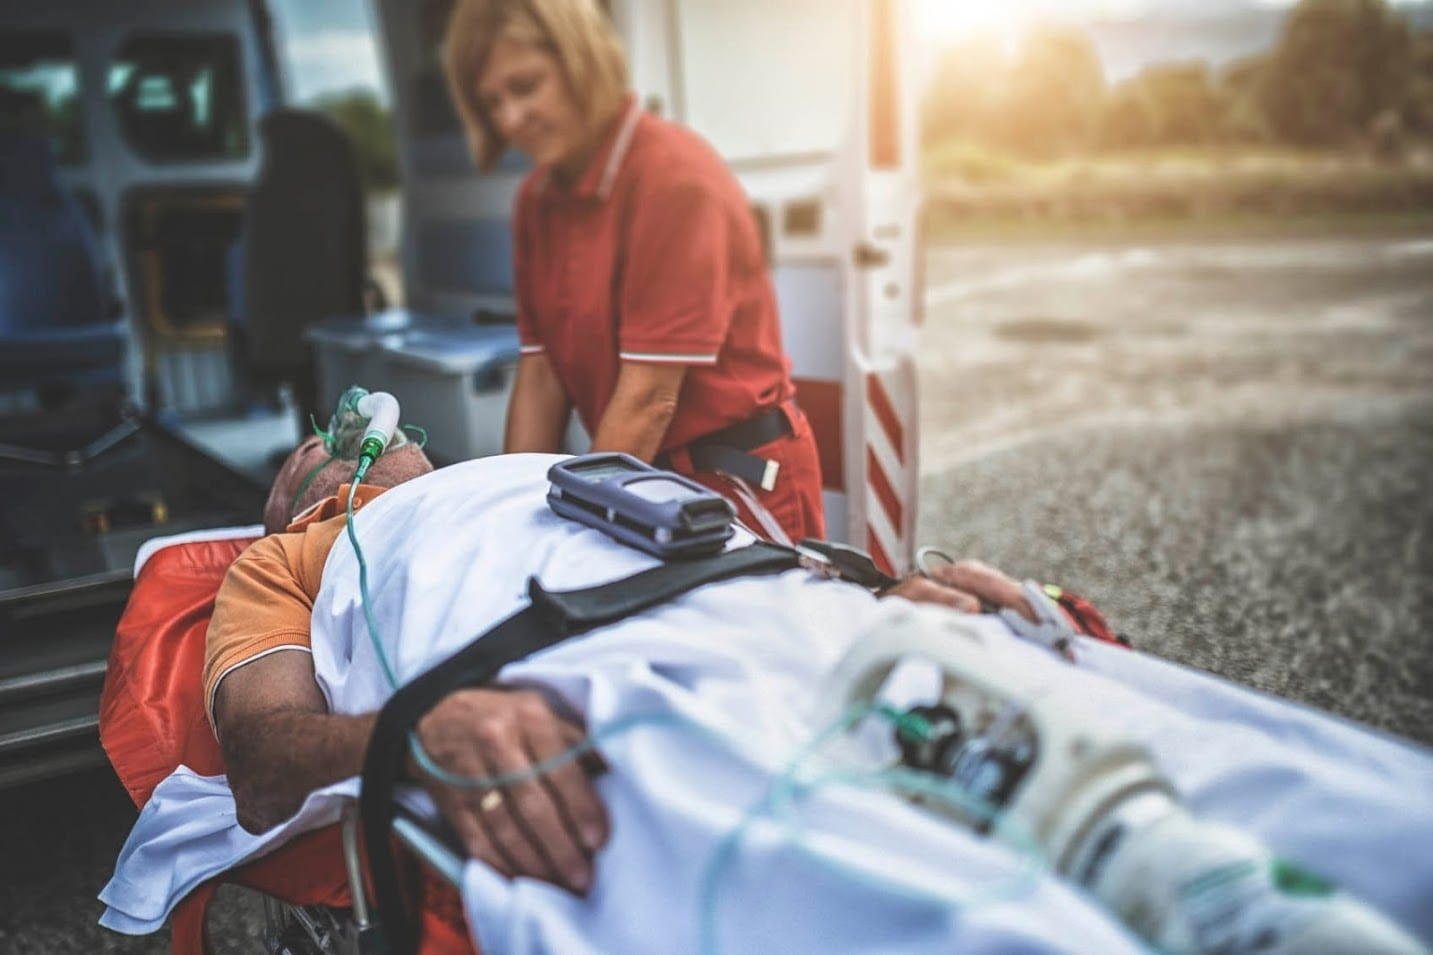 Injured Man Being Loaded Into An Ambulance Stock Photo